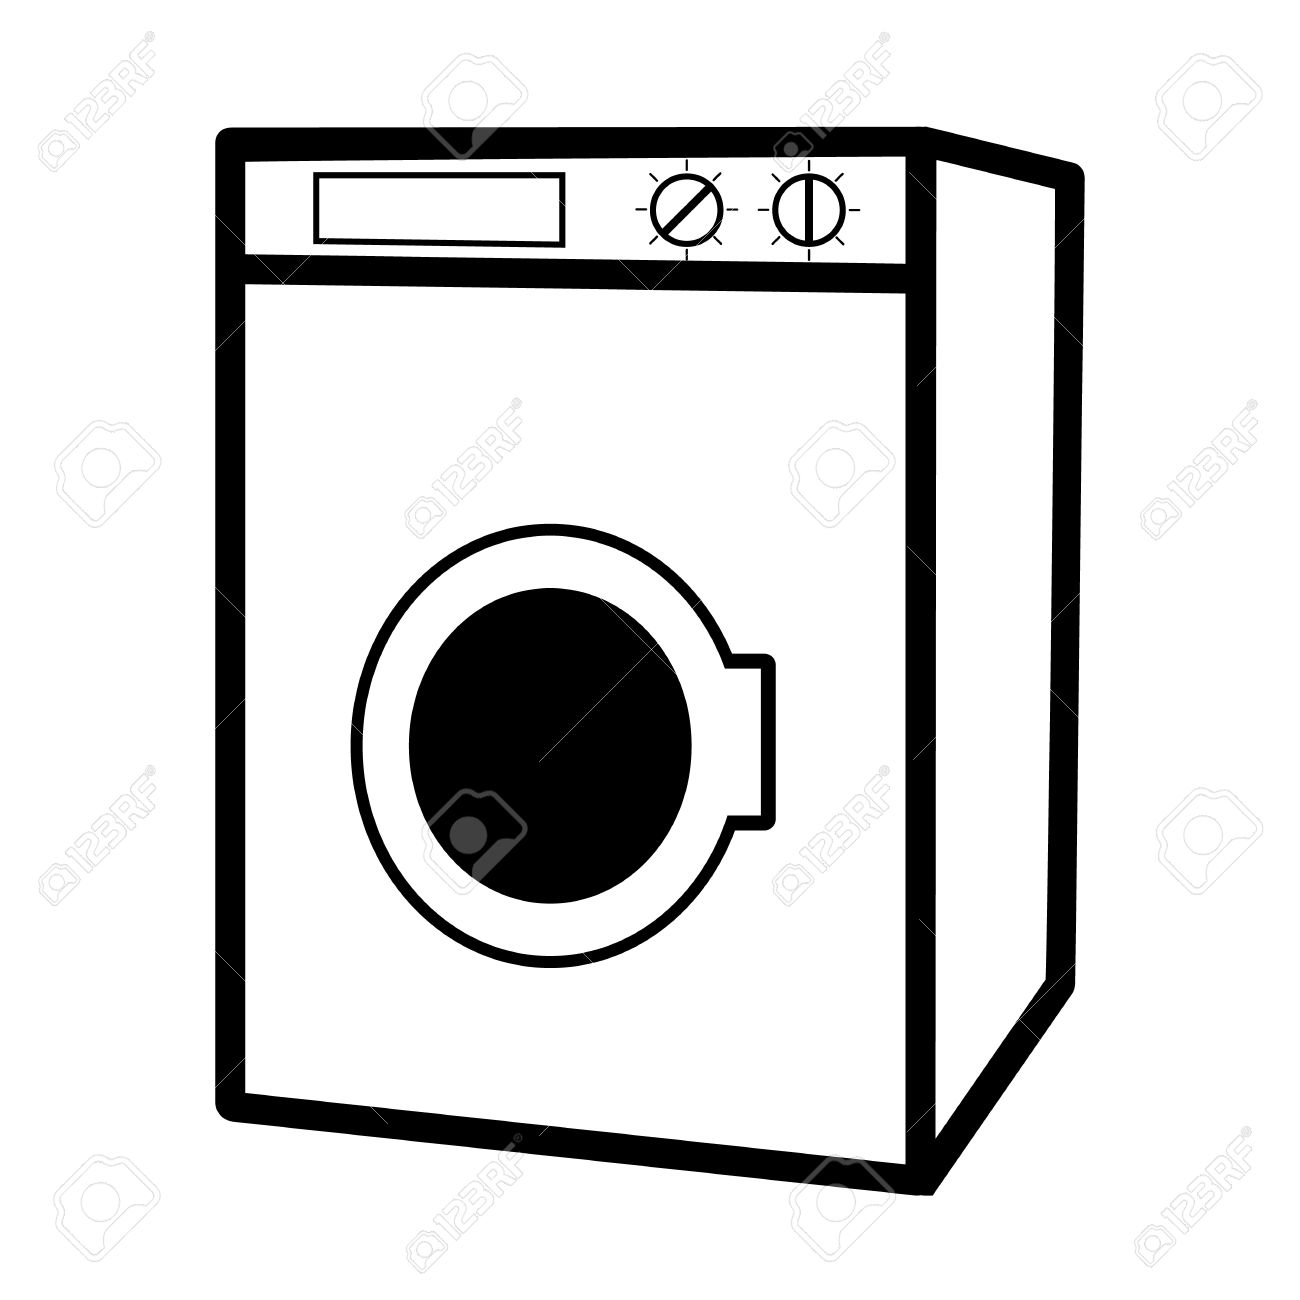 The stanley hotel clipart contact details clip library stock Washing machine clipart black and white 5 » Clipart Station clip library stock